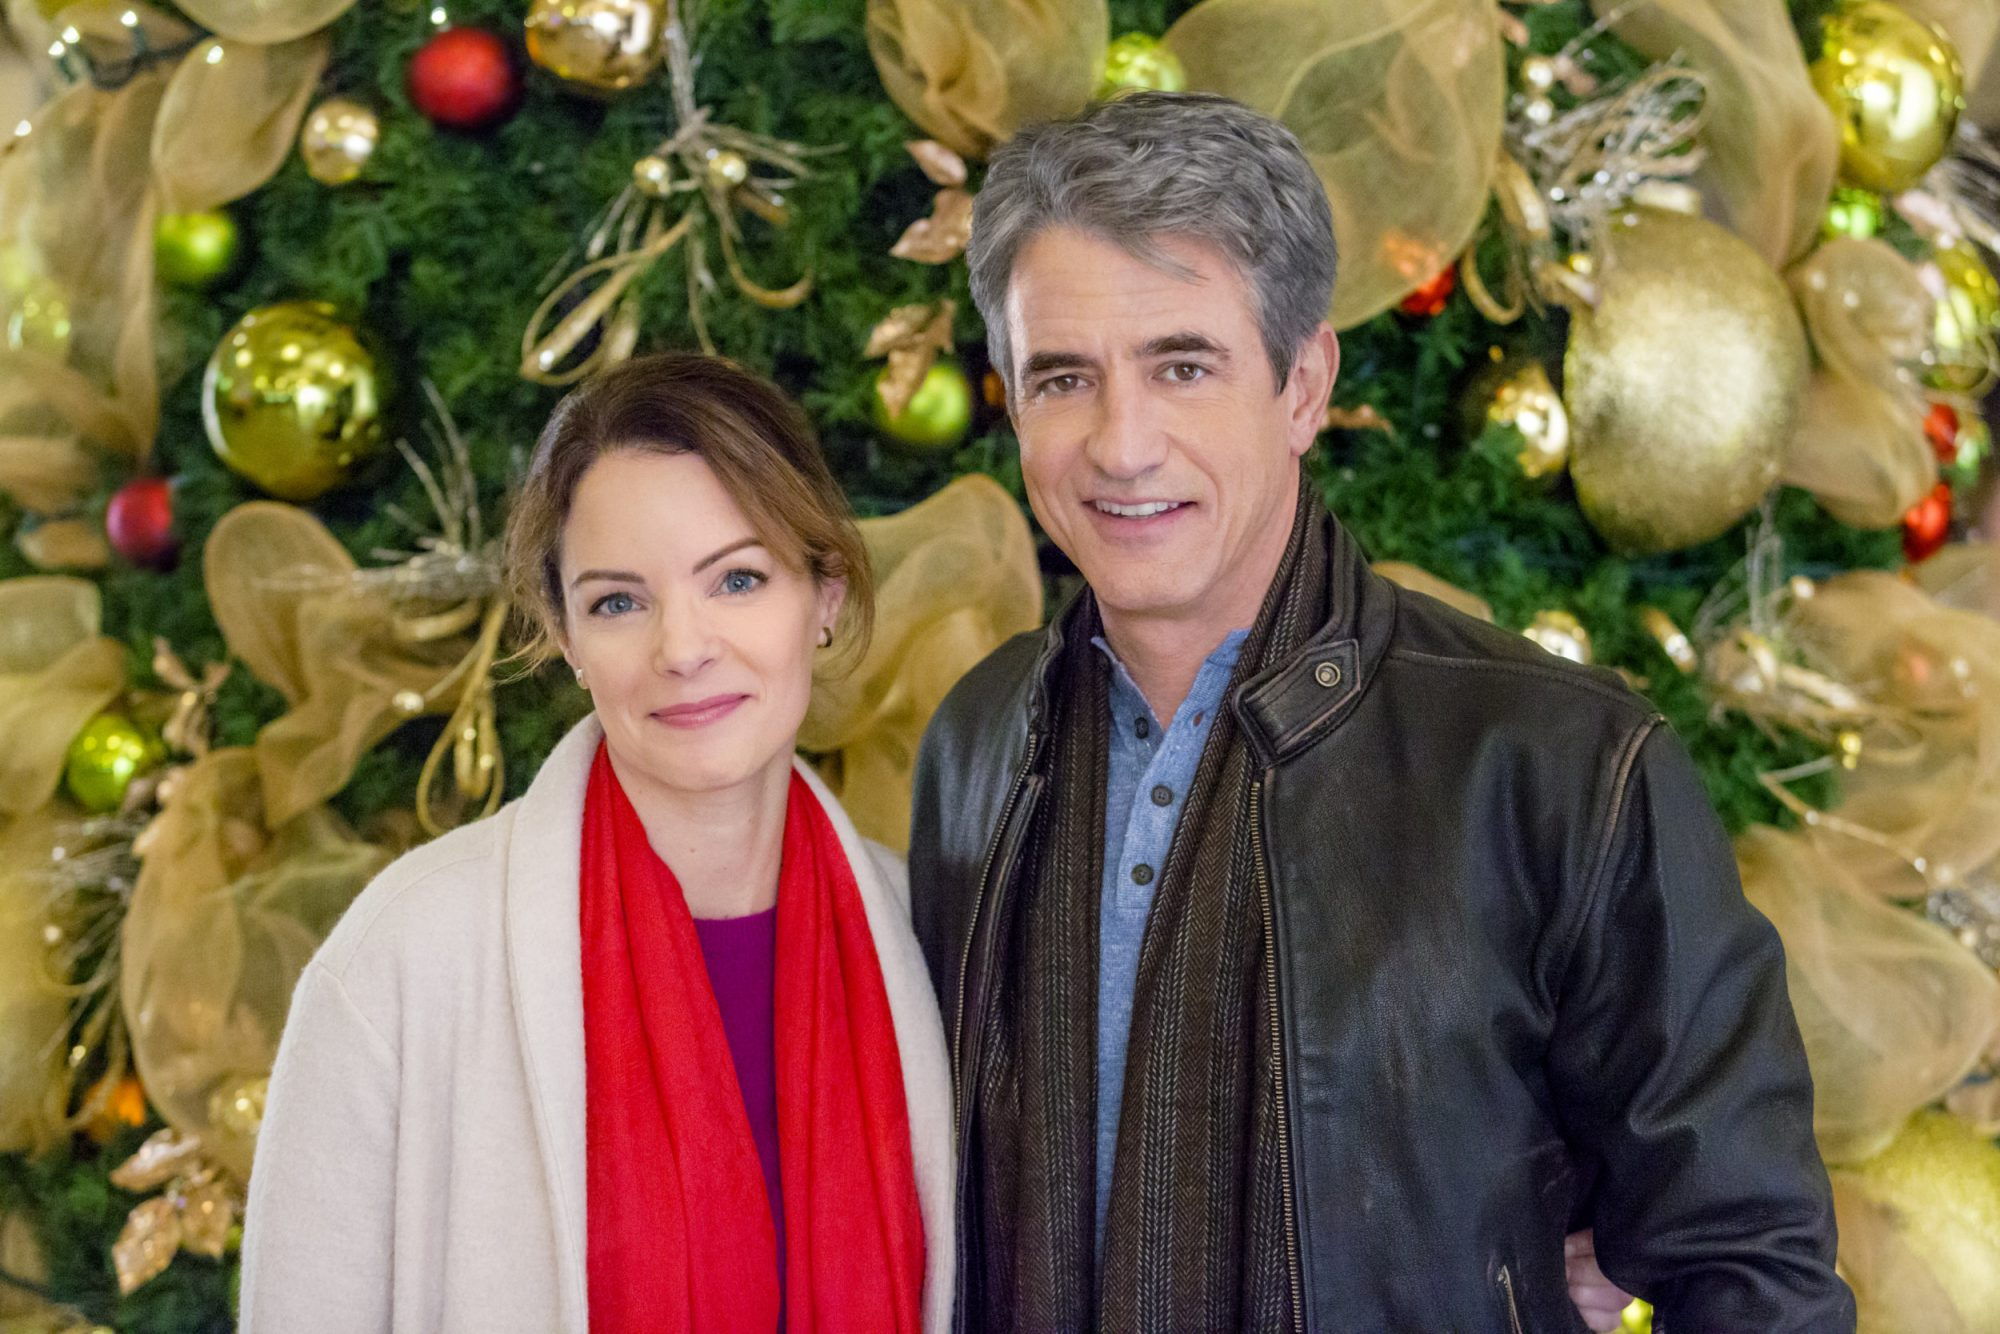 Mark Your Calendars for the Biggest Hallmark Christmas Movie of the ...